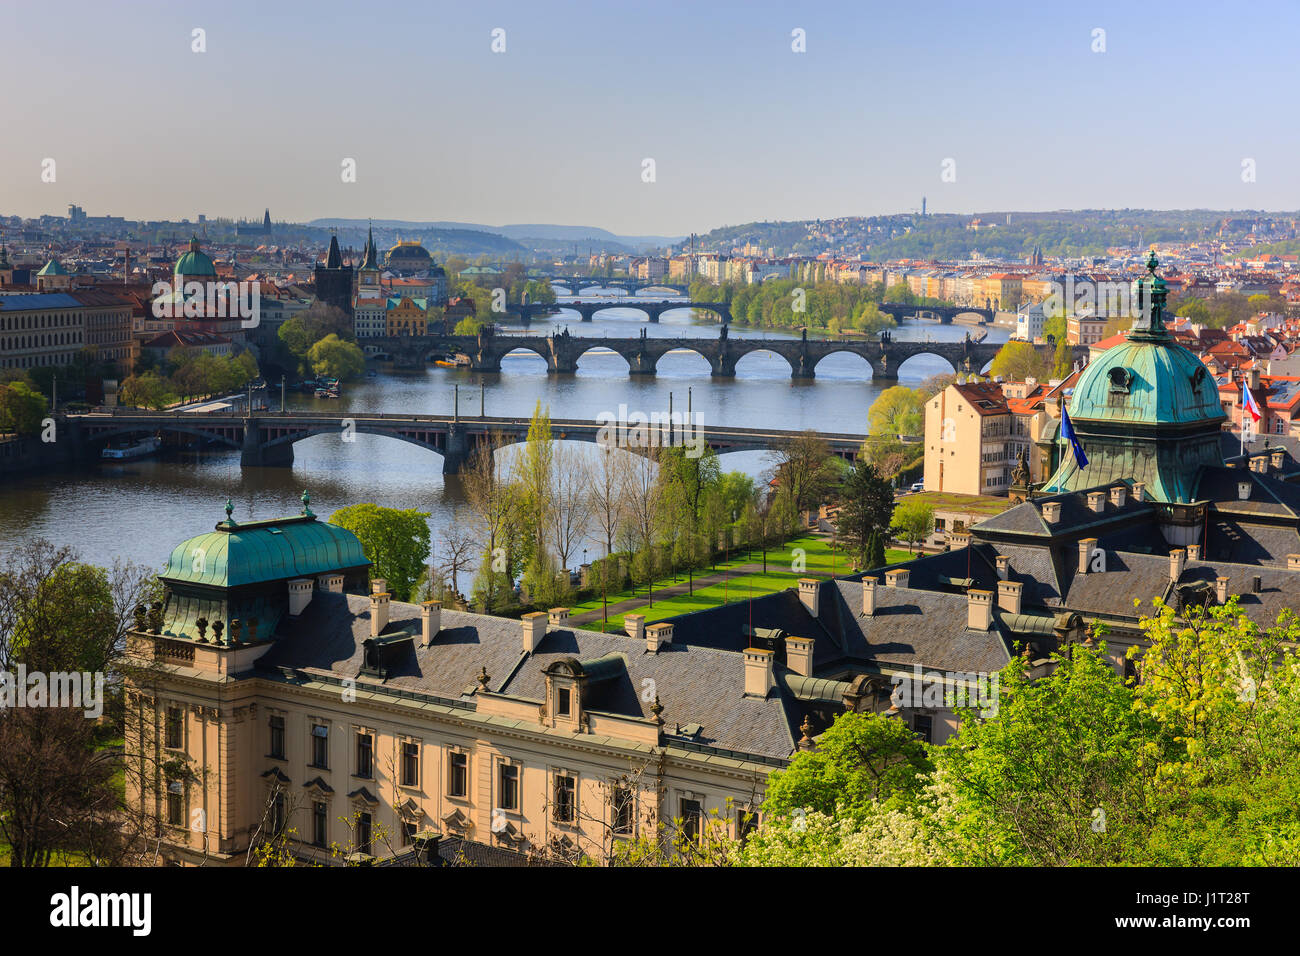 The view from Letenske Sady over the city of Prague and the river Vitava in the Czech Republic Stock Photo